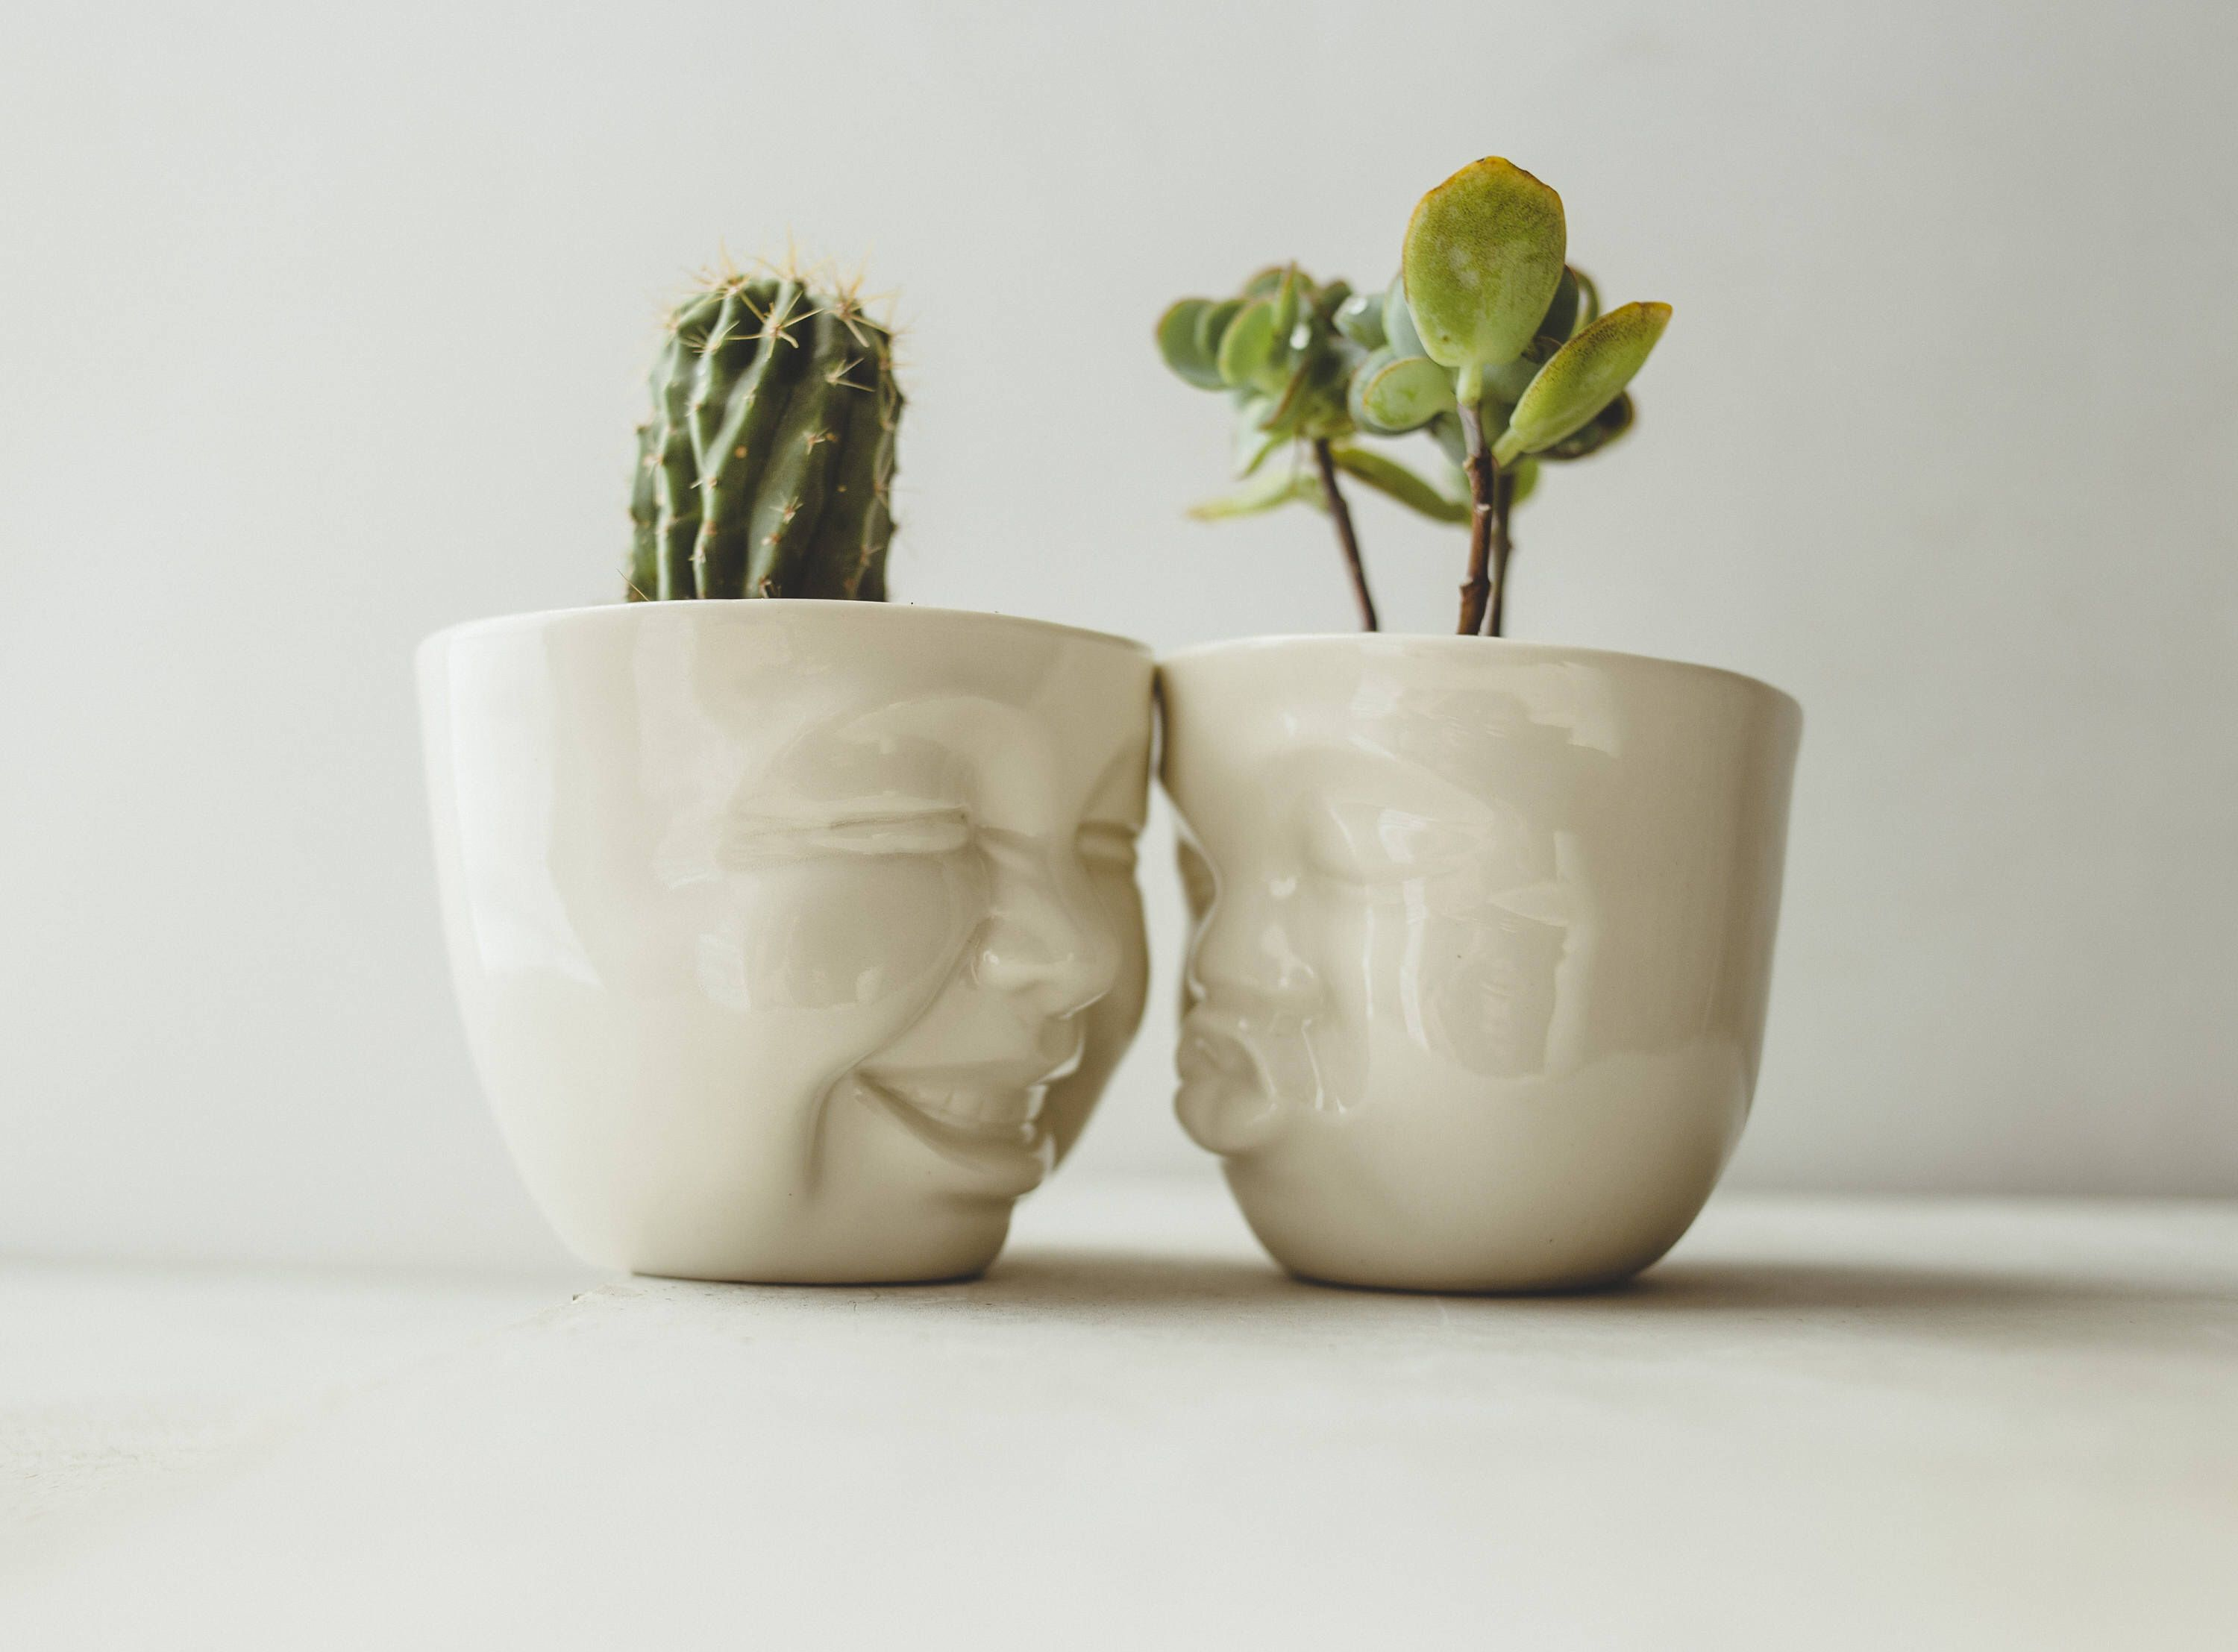 Image result for This cute face planter birthday gift images